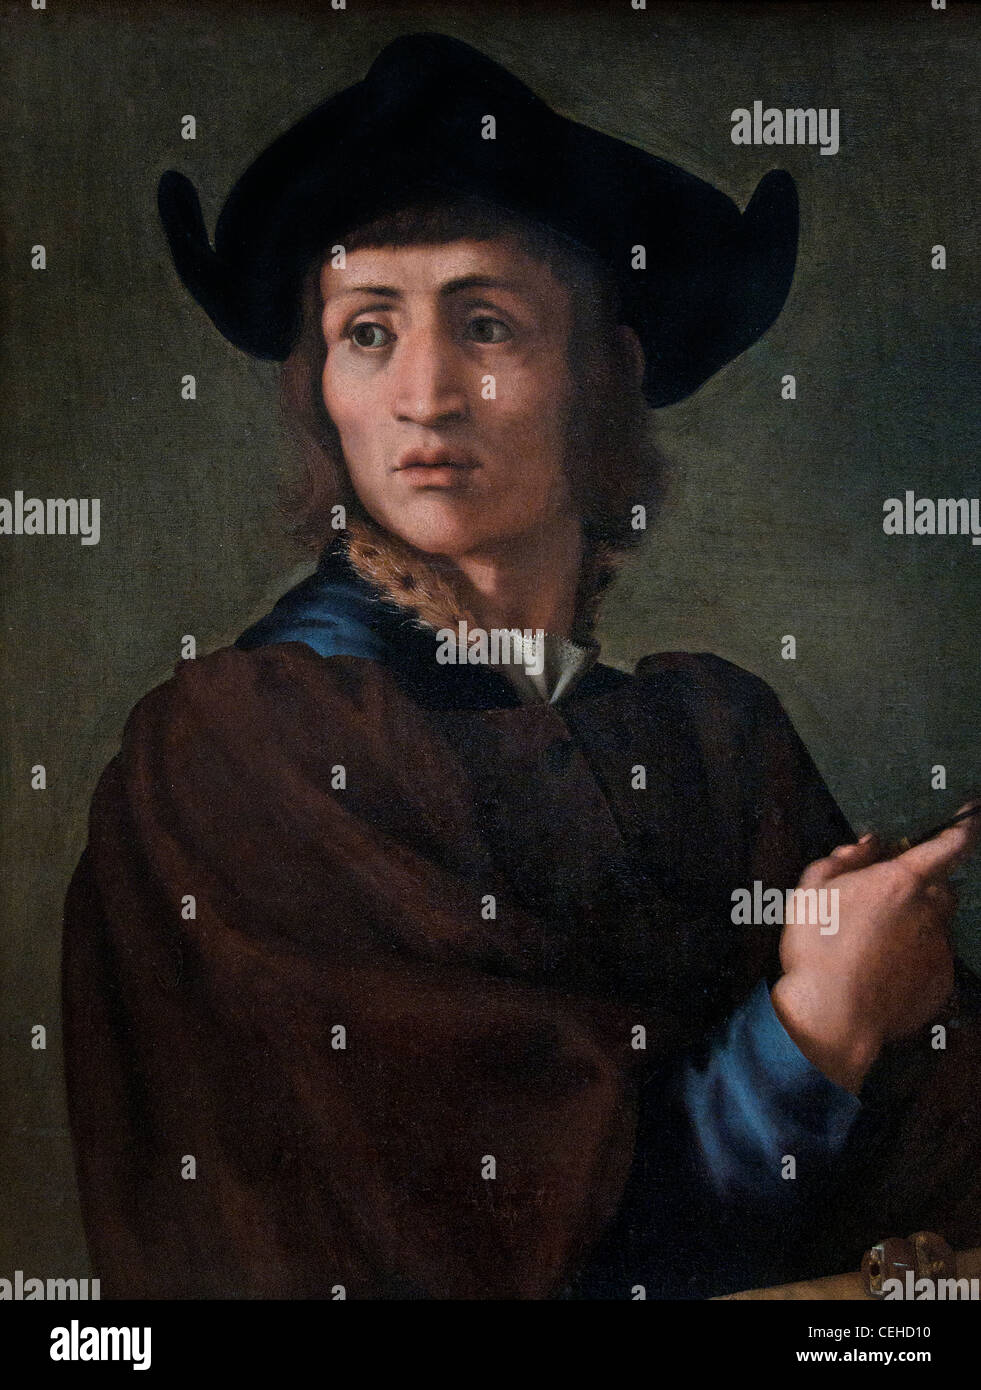 Portrait d un graveur en pierres fines - engraver in gemstones by Il Pontormo  Jacopo Carruci 1494 - 1556 Italian - Stock Image